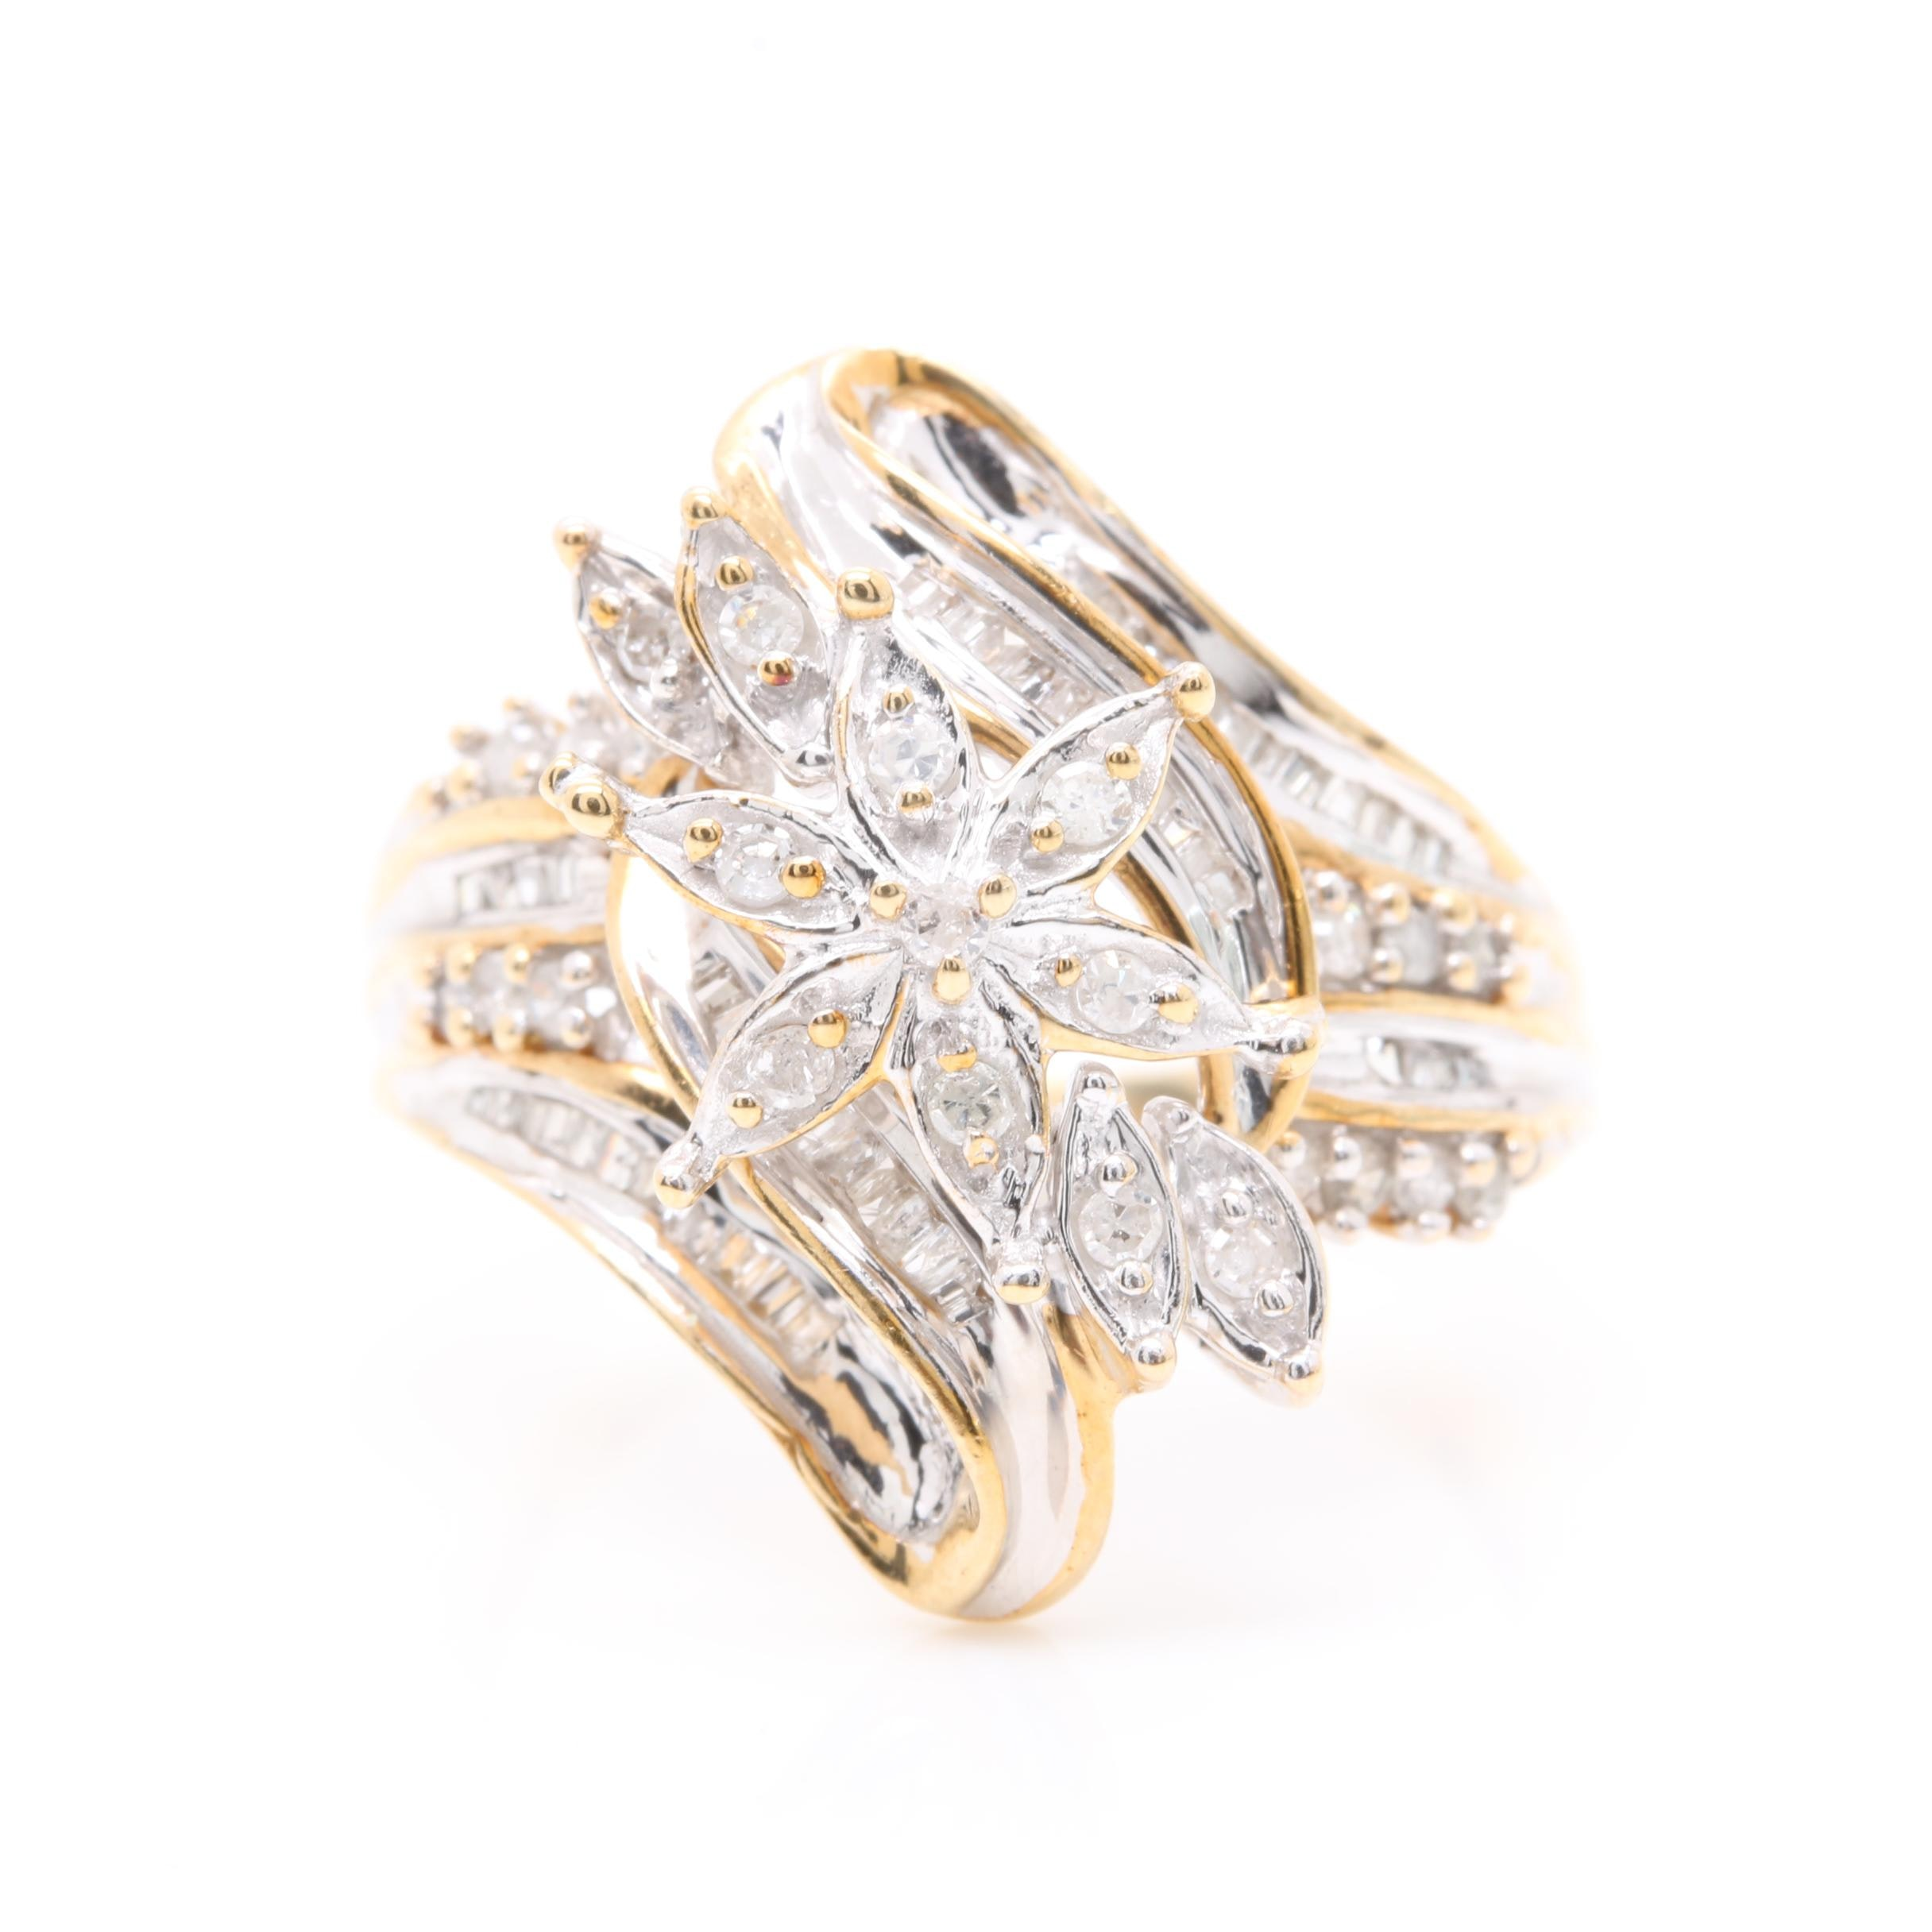 10K Yellow Gold Diamond Floral Ring with White Gold Accents